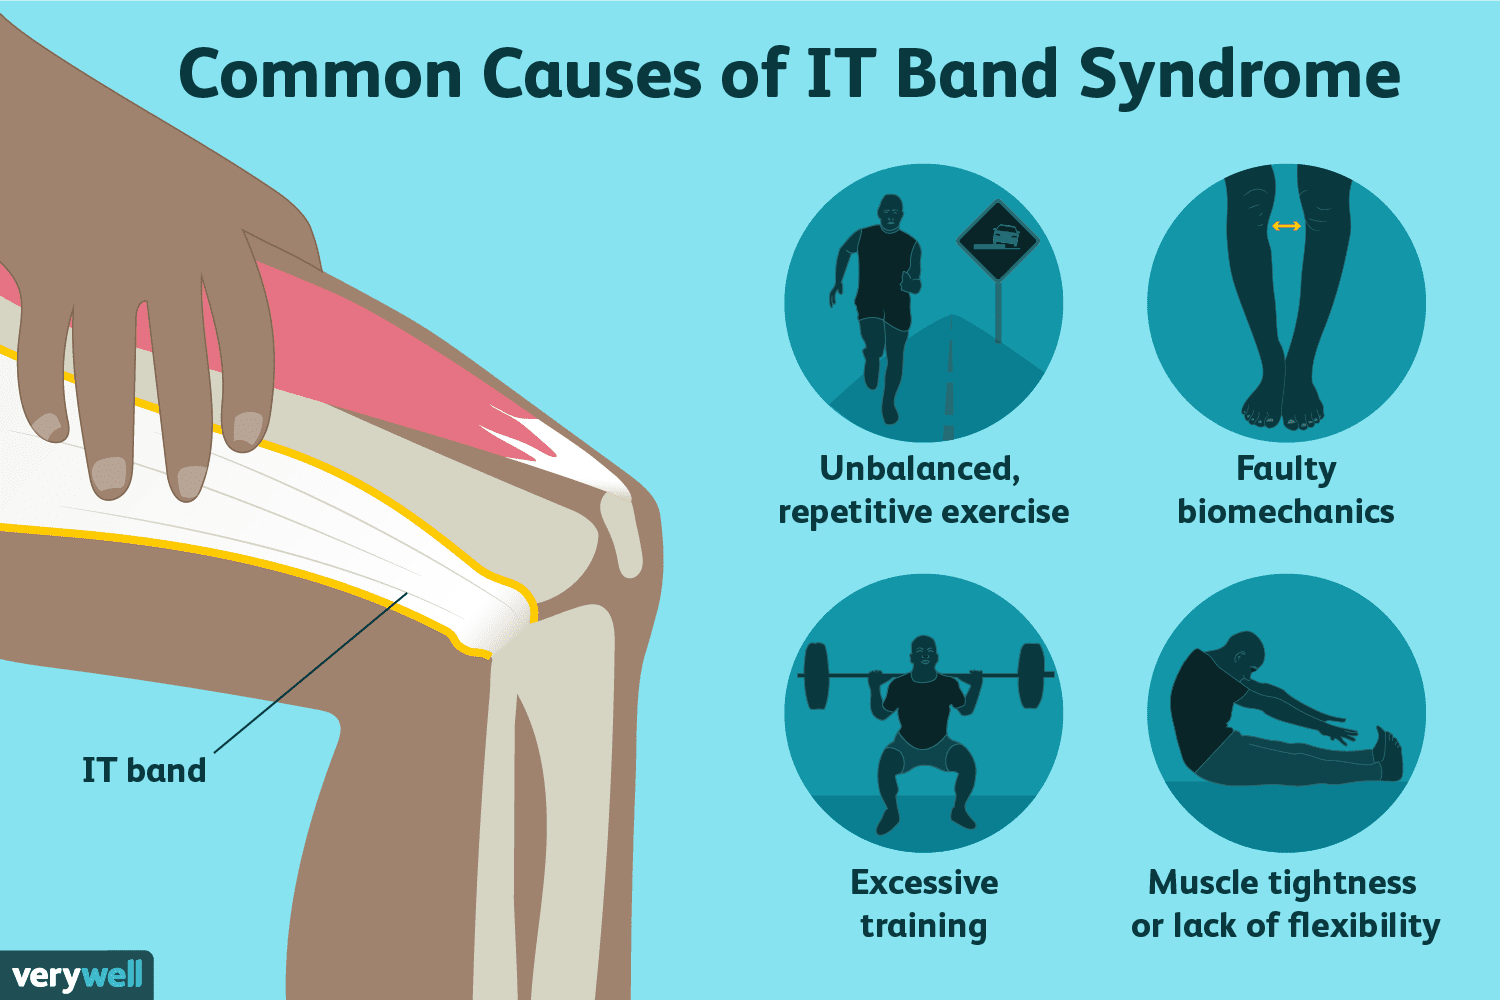 iliotibial band syndrome causes)